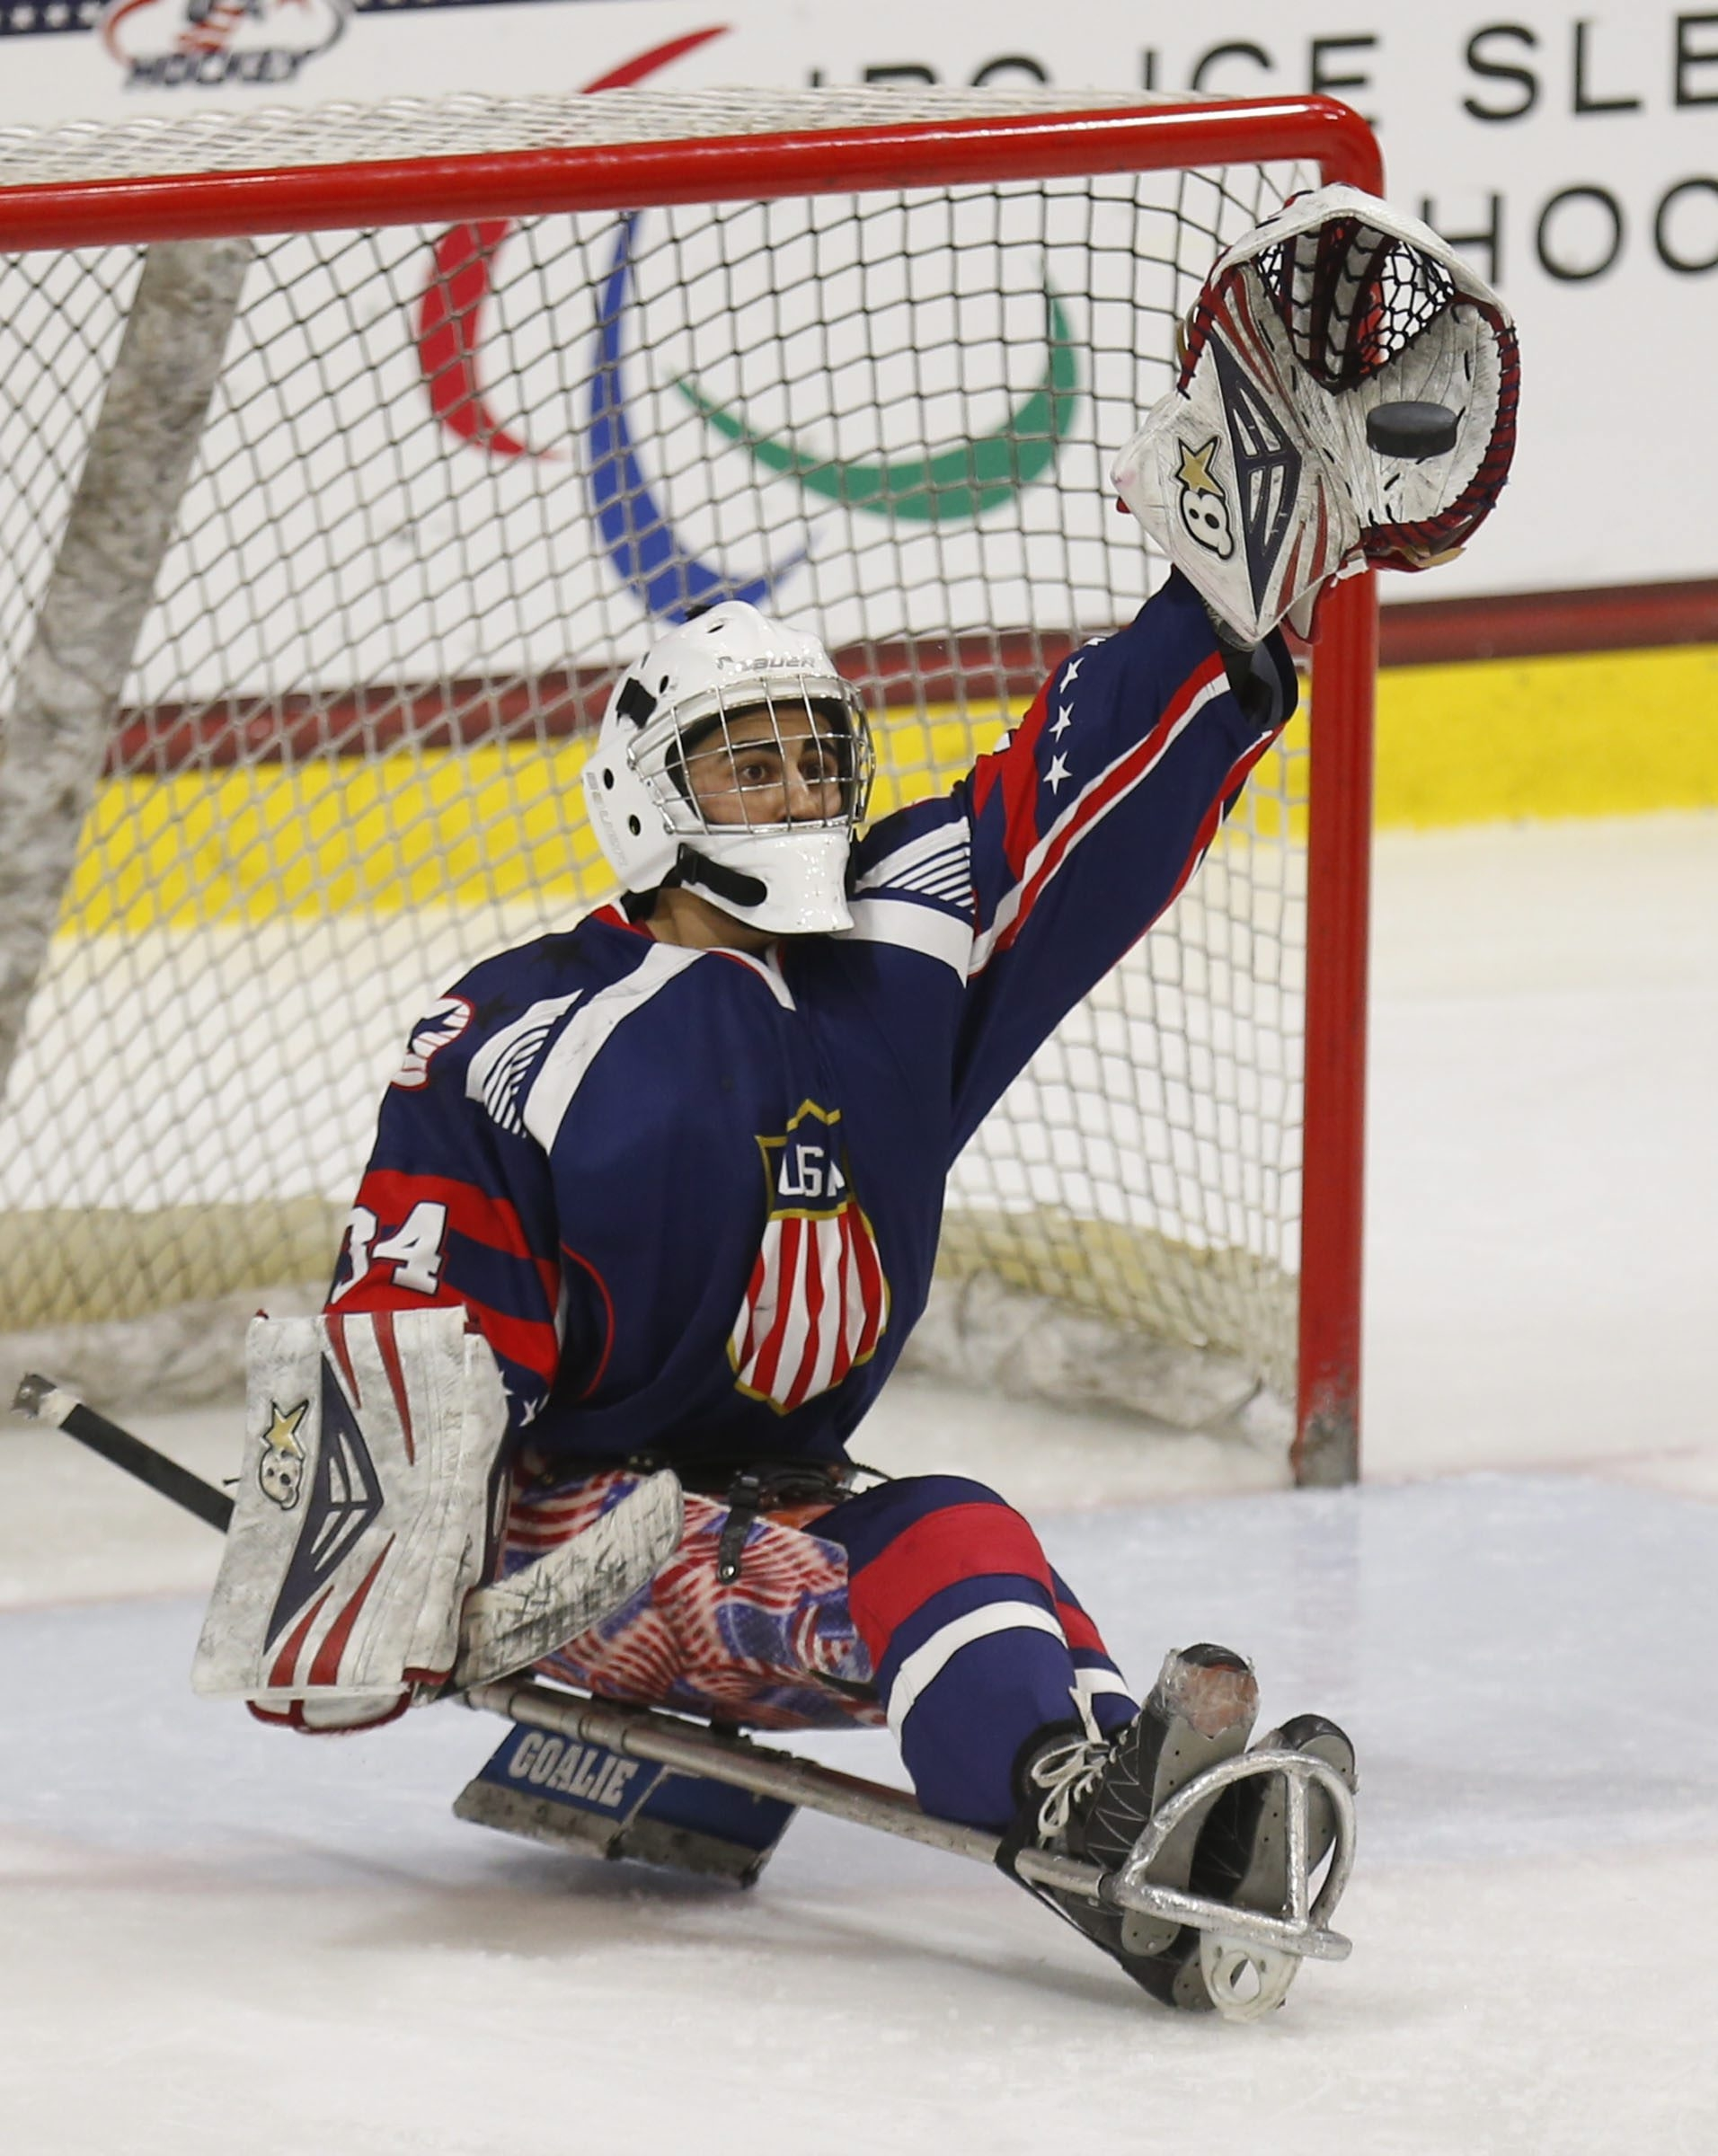 USA goaltender Steve Cash stops a Russian shot during third period action in the IPC Ice Sledge Hockey World Championships HarborCenter on Sunday, April 26, 2015.(Harry Scull Jr./Buffalo News)